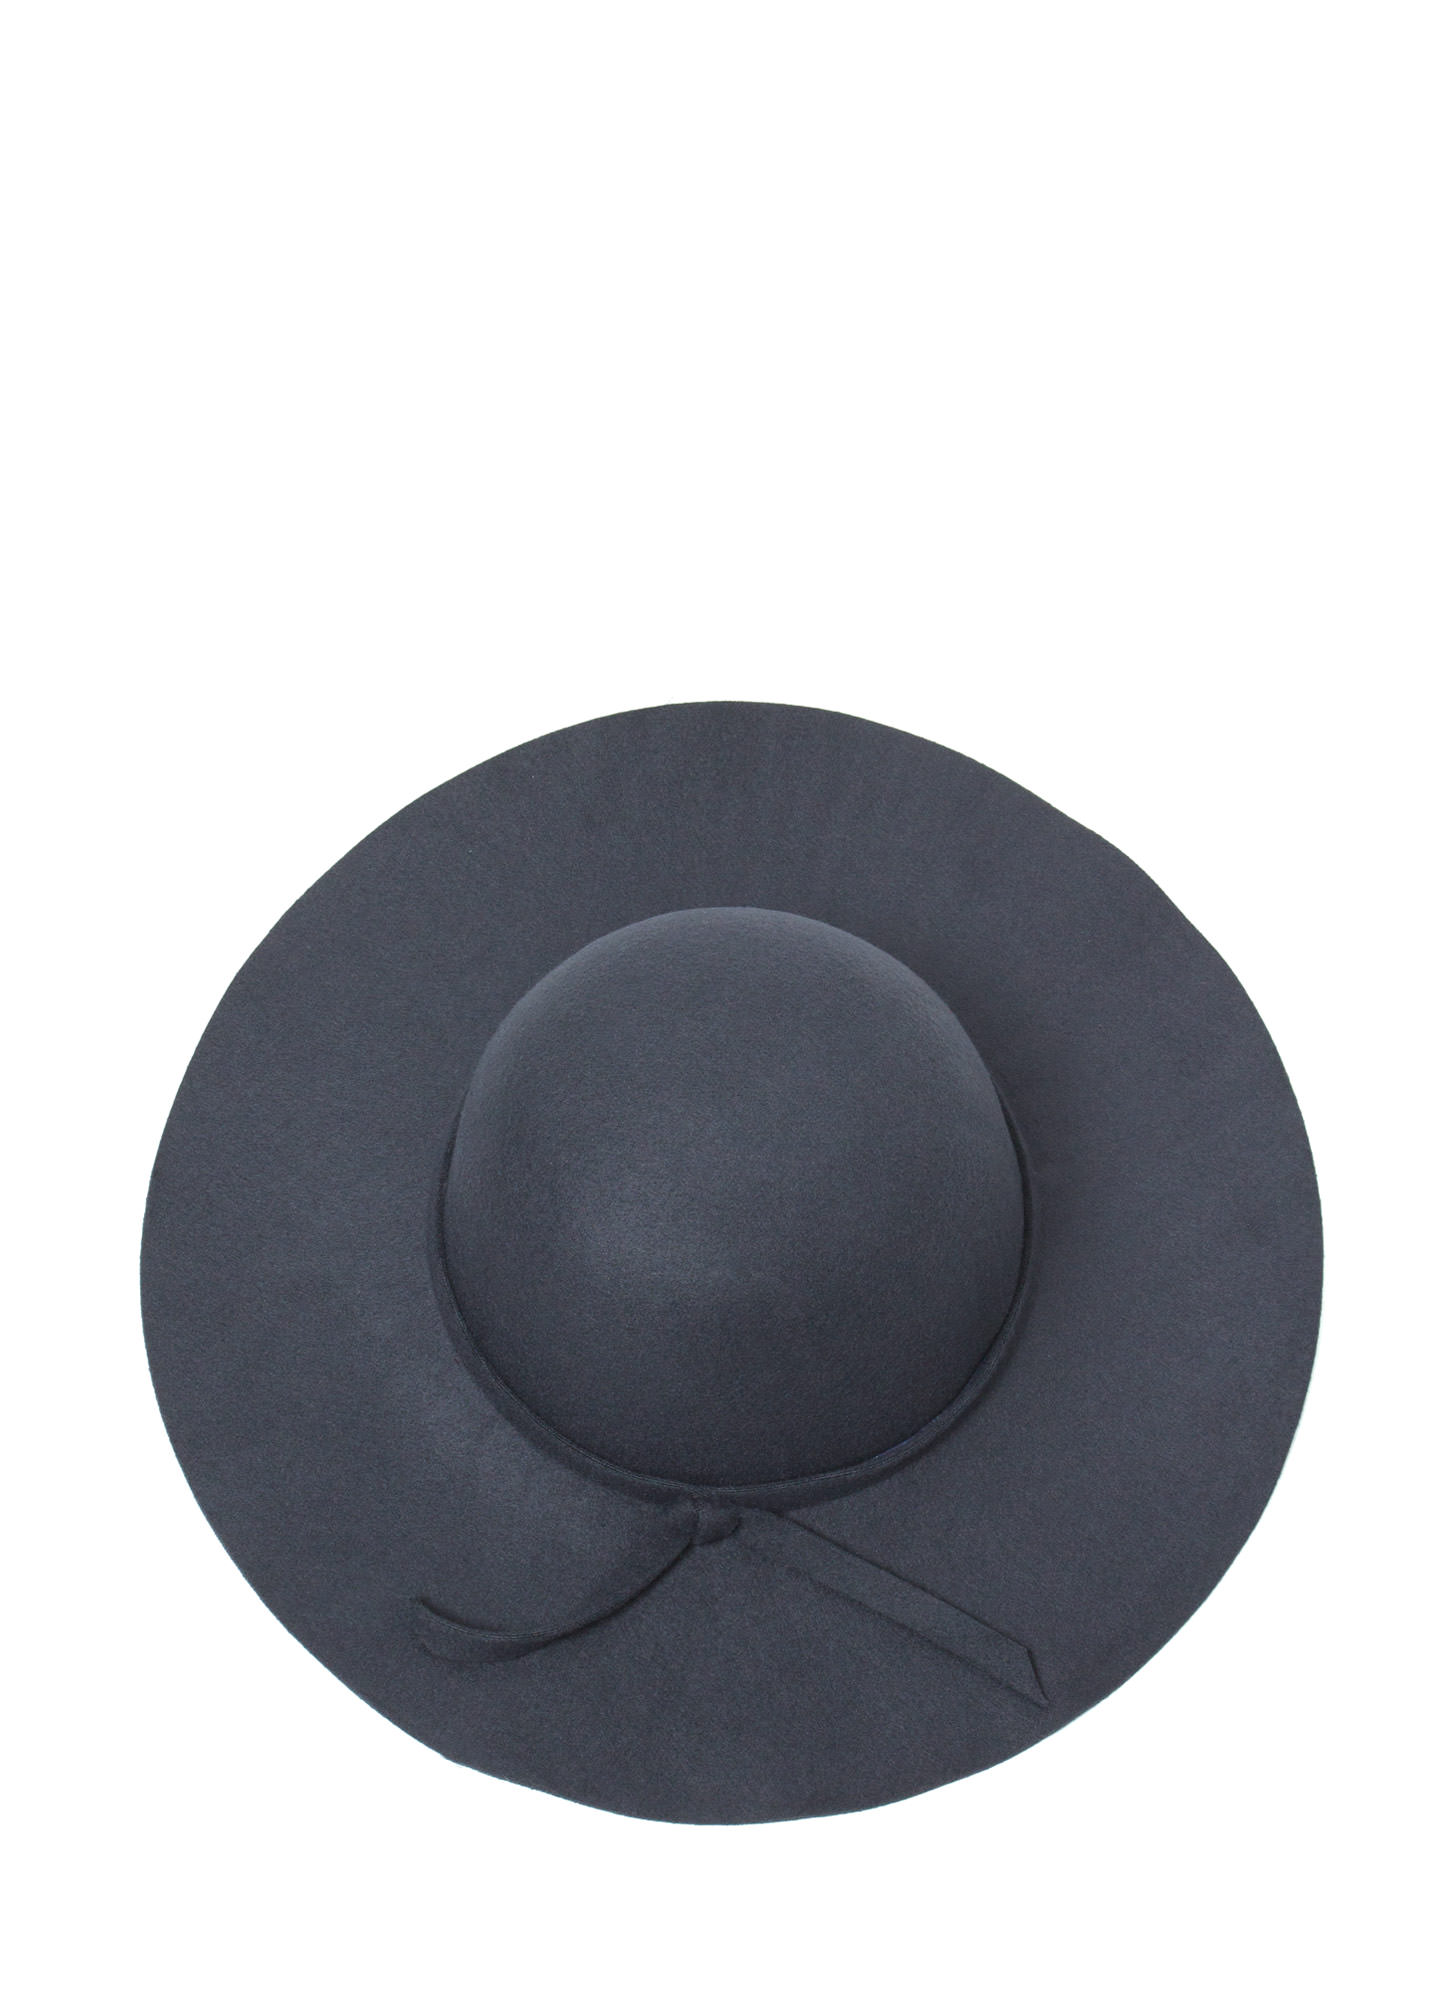 Knotted Tie Relaxed Hat DKGREY